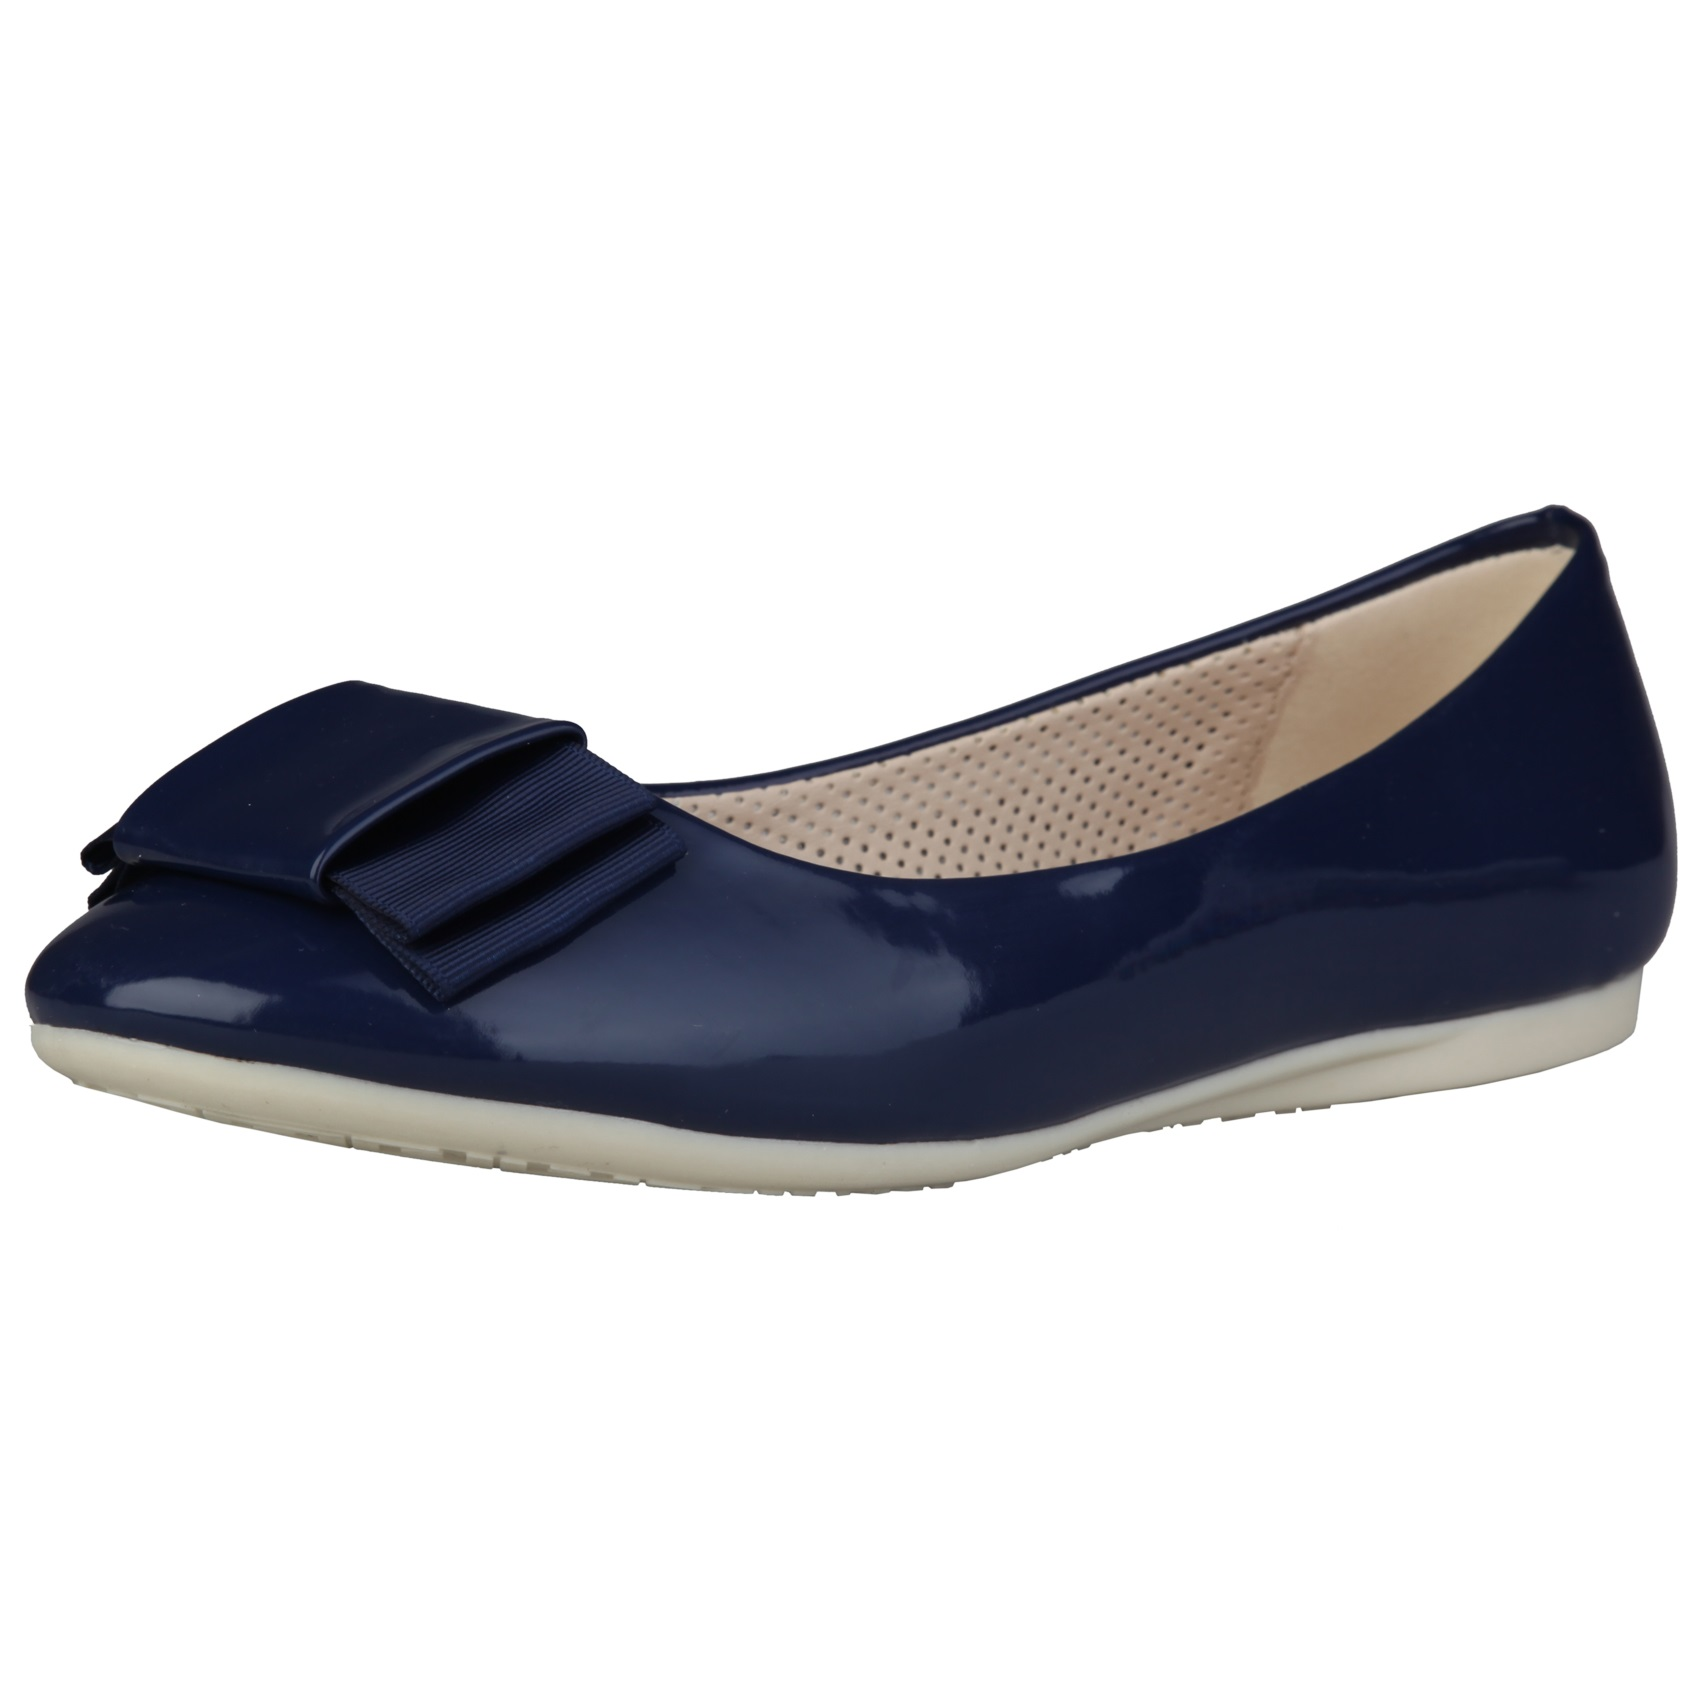 Sofia Loes Flat Shoes Fiocco Bluscuro Rf600154